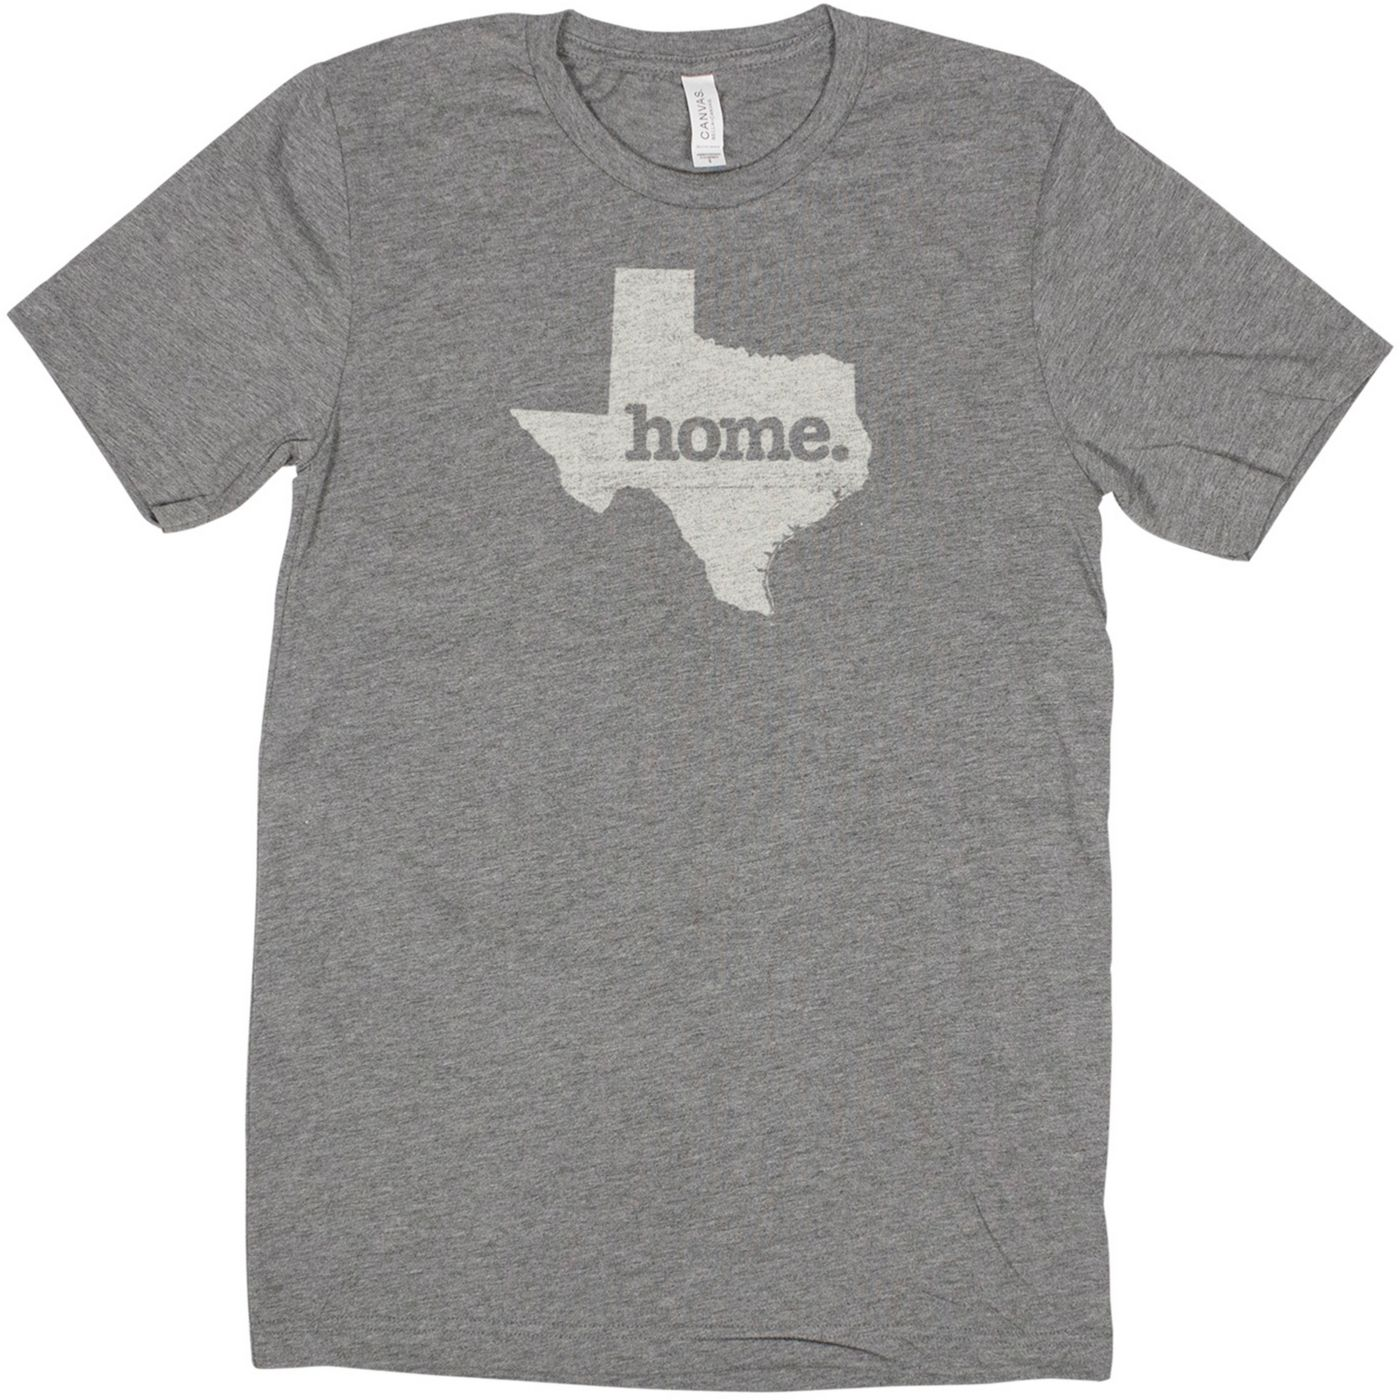 Home State Apparel Men's Home State Texas Short Sleeve T-Shirt